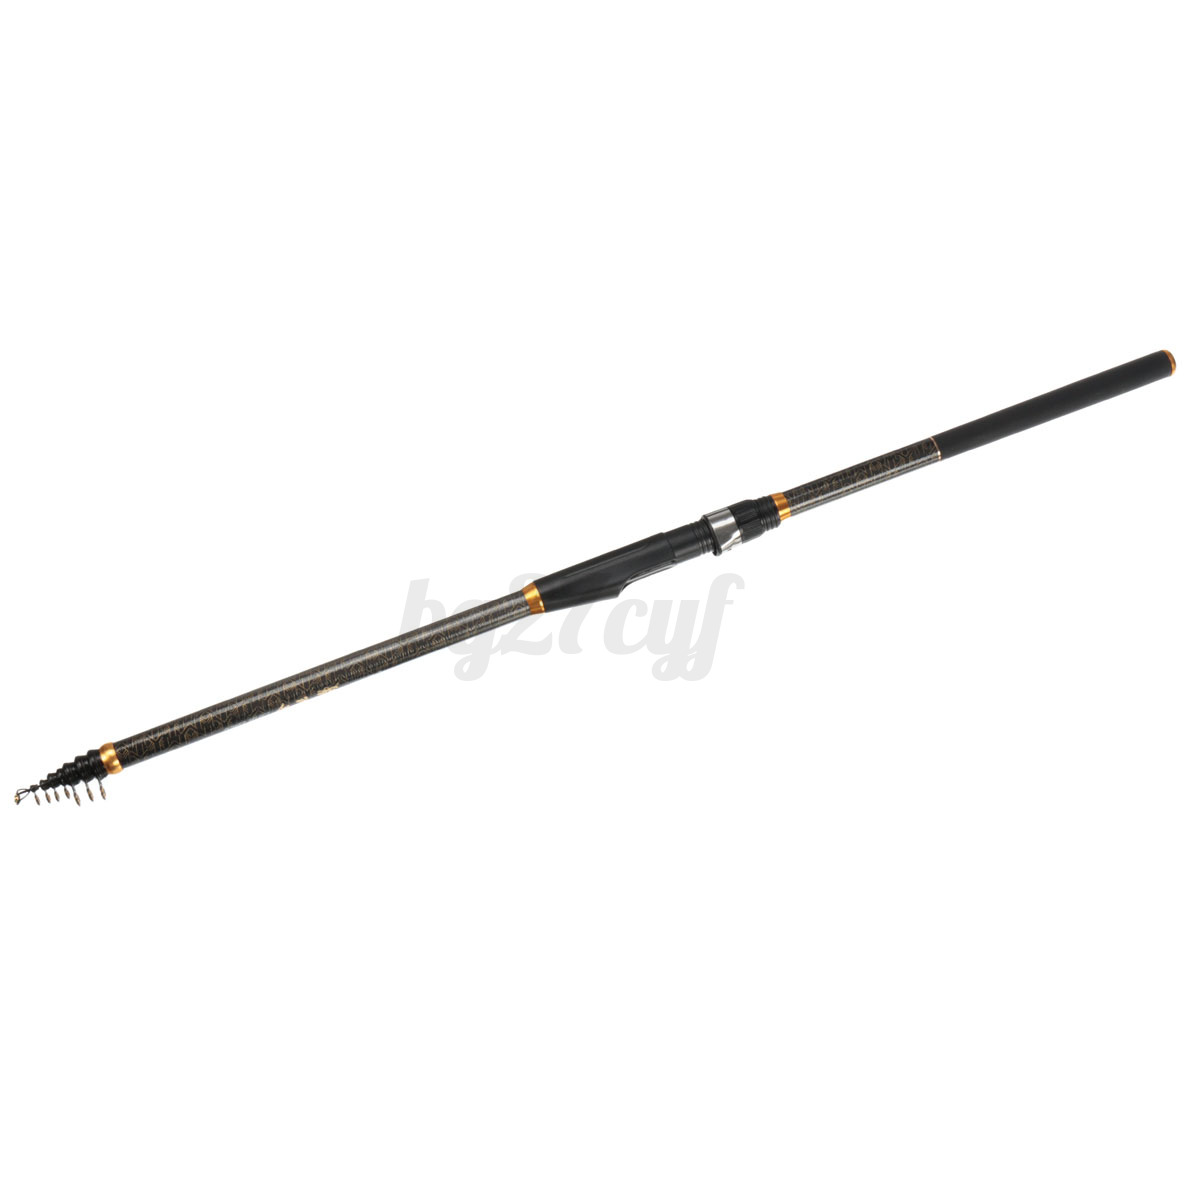 Carbon fiber fishing rods telescopic casting for Telescoping fishing rod